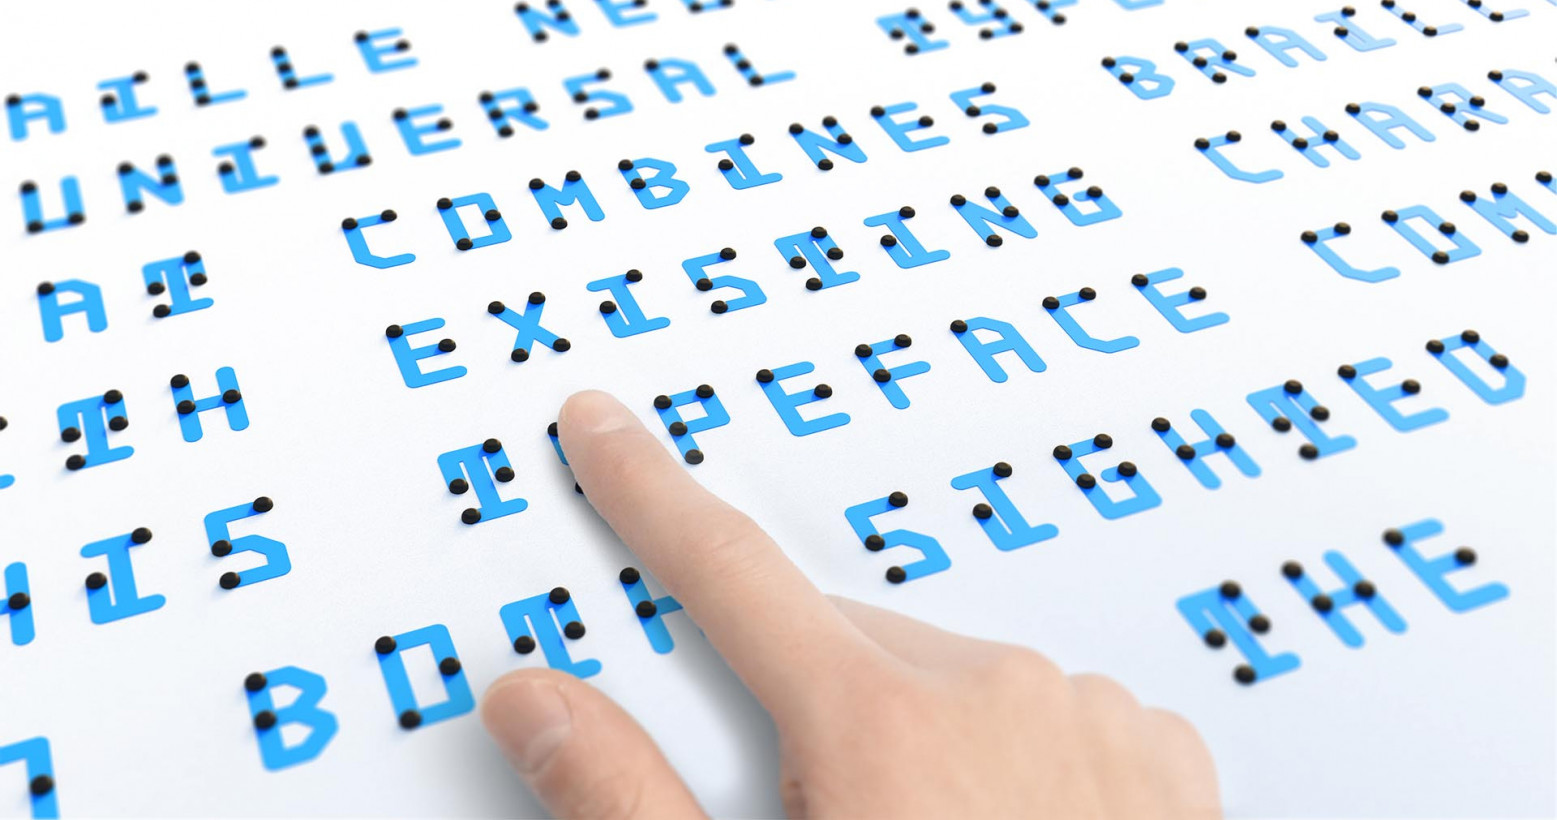 This clever new font combines braille with Latin and Japanese alphabets